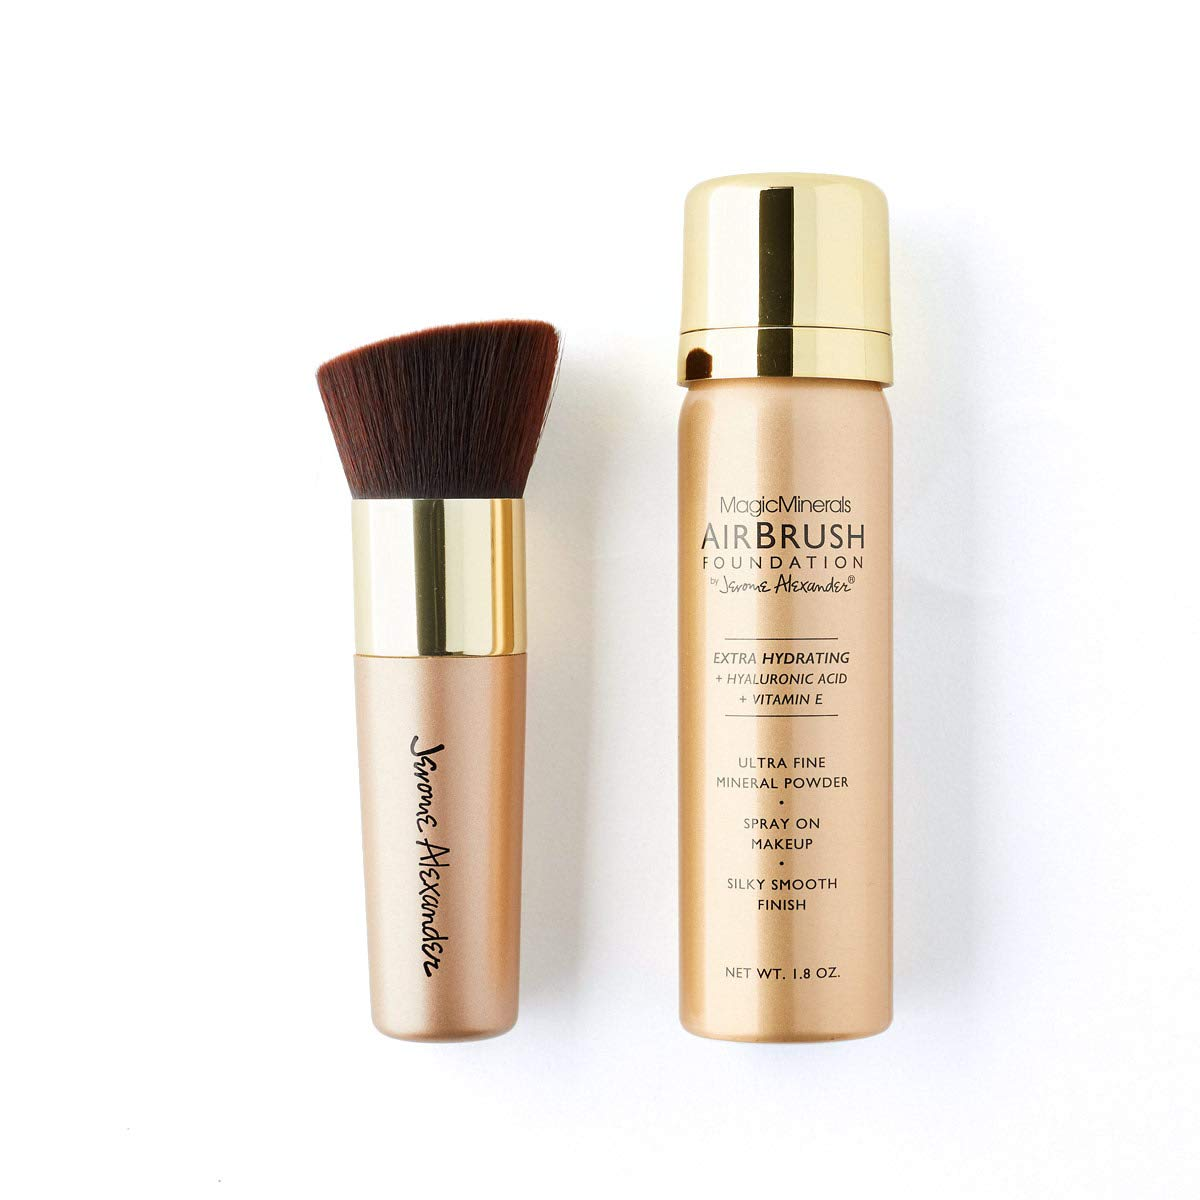 MagicMinerals AirBrush Foundation by Jerome Alexander – 2pc Set with Airbrush Foundation and Kabuki Brush - Spray Makeup with Anti-aging Ingredients for Smooth Radiant Skin (Gold Edition: Medium)